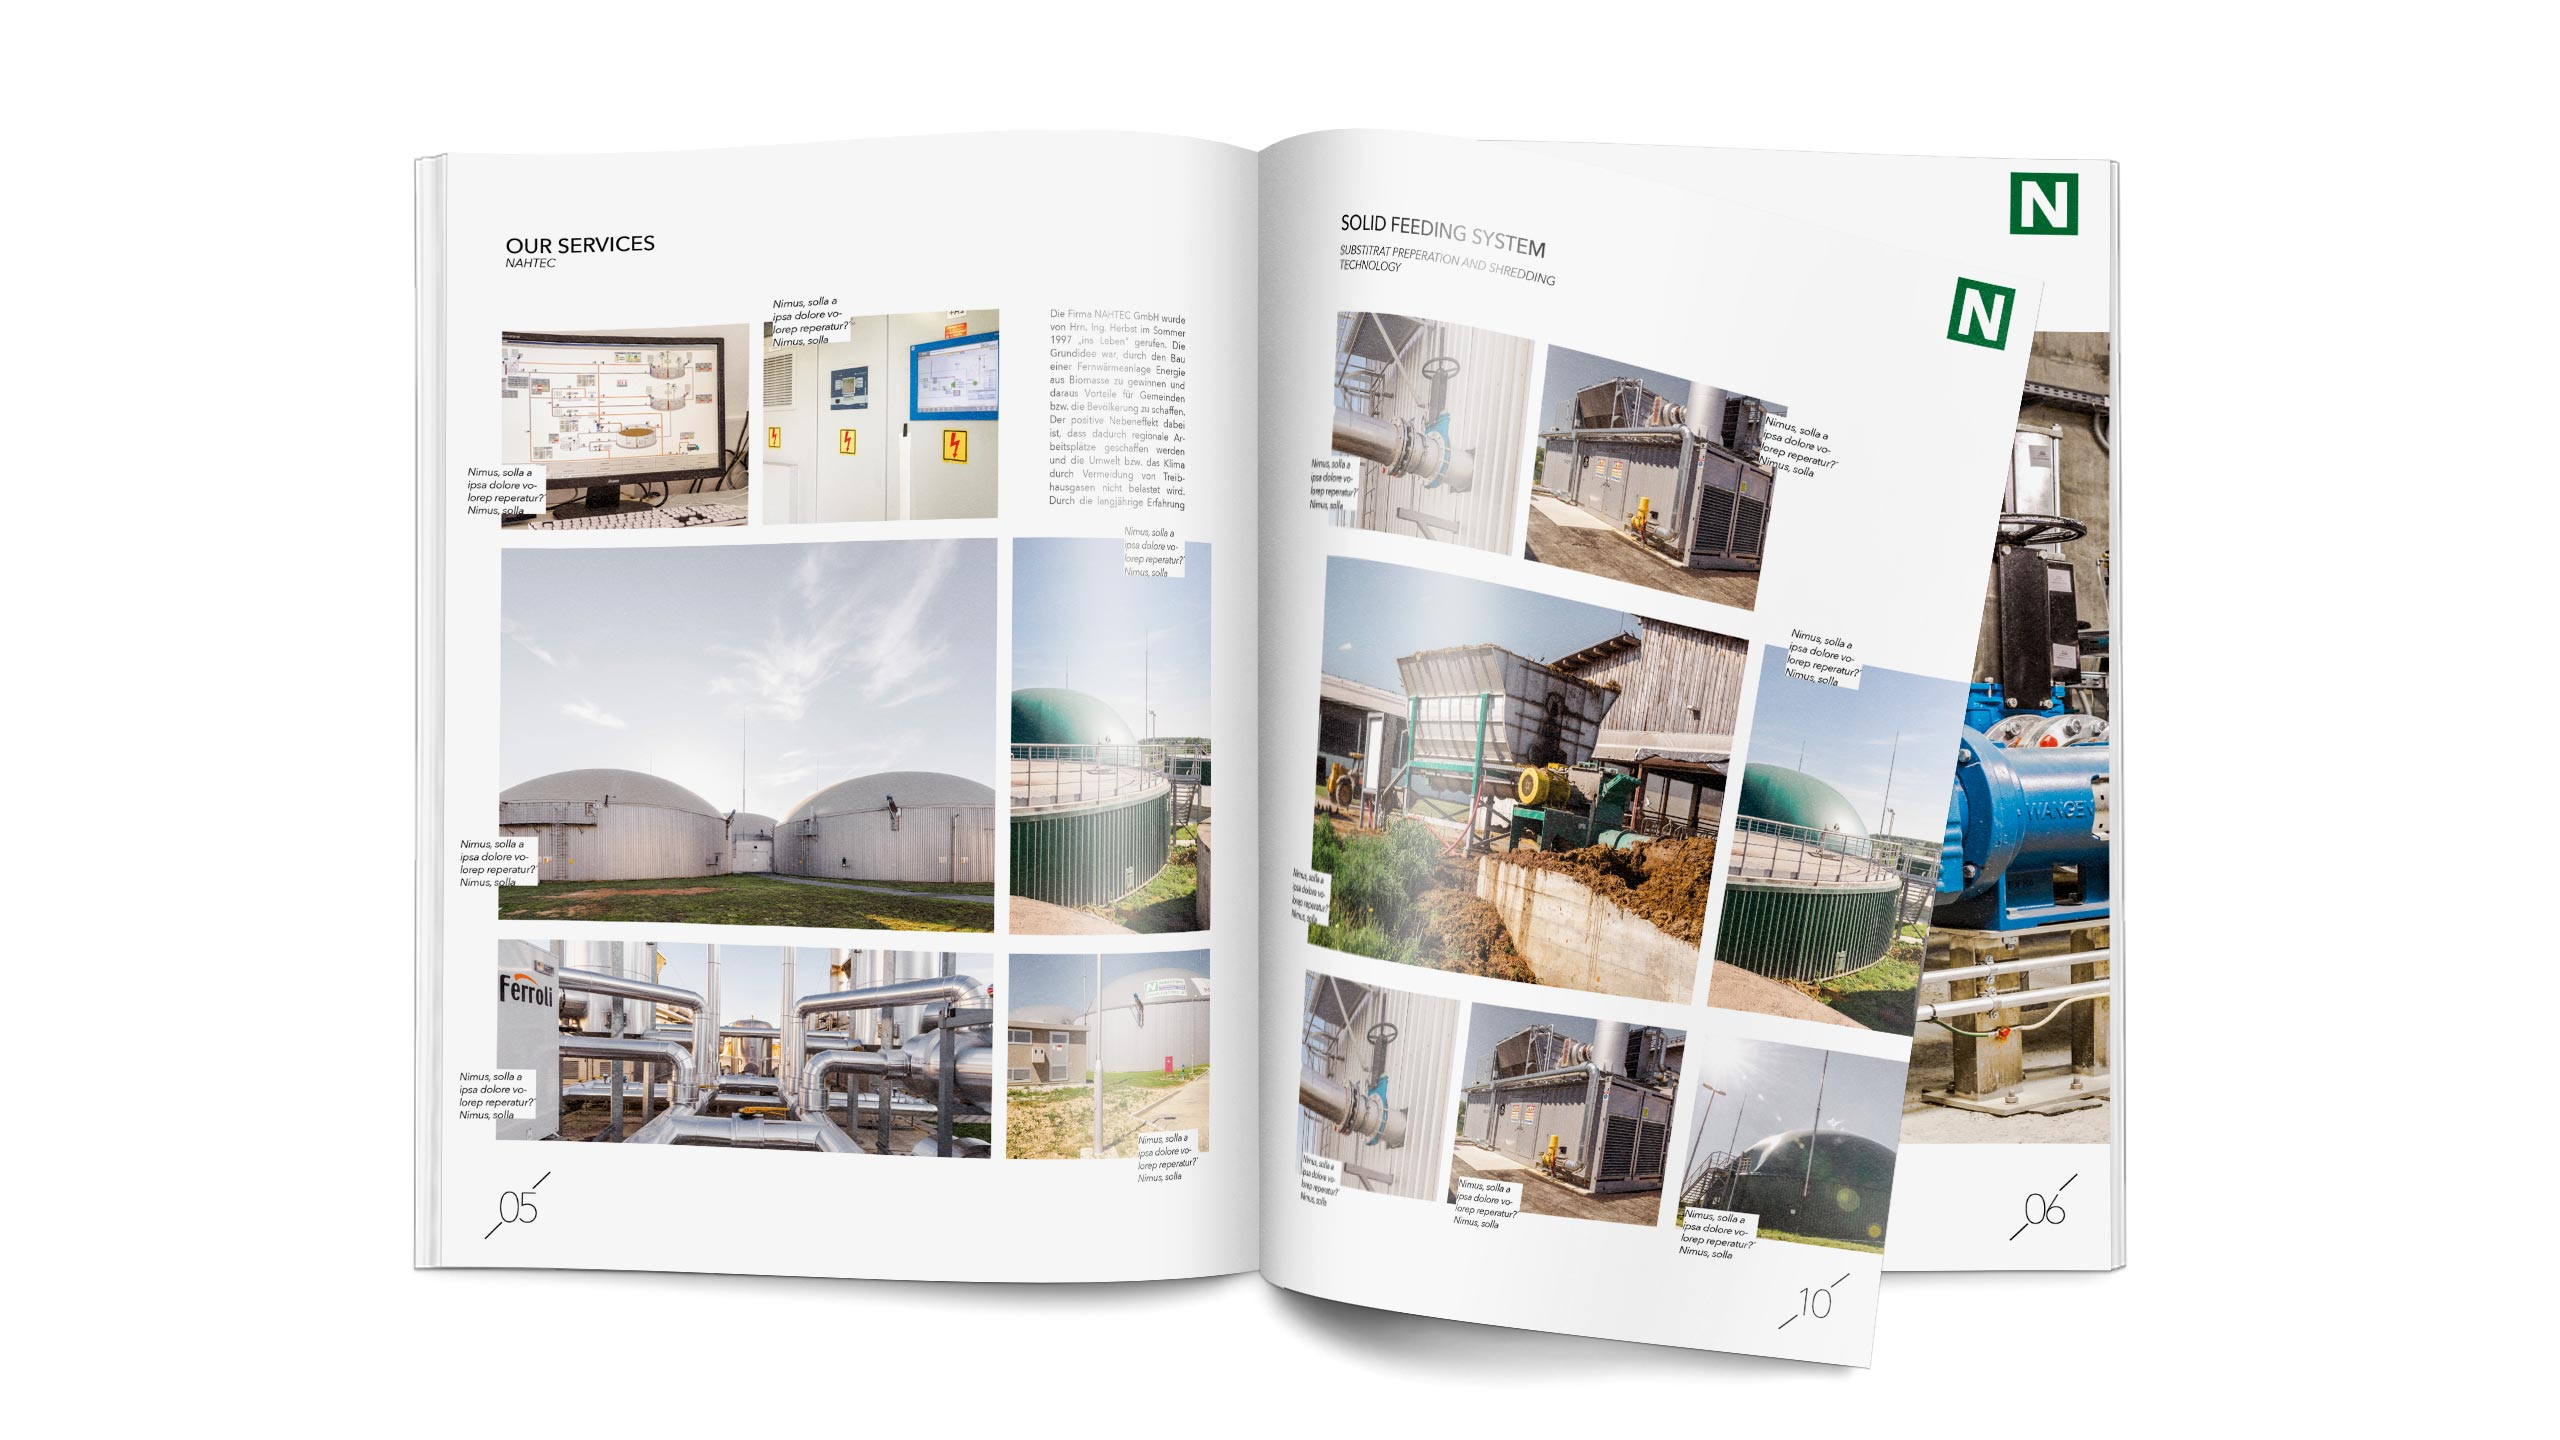 Nahtec-Magazin-Corporate-Design